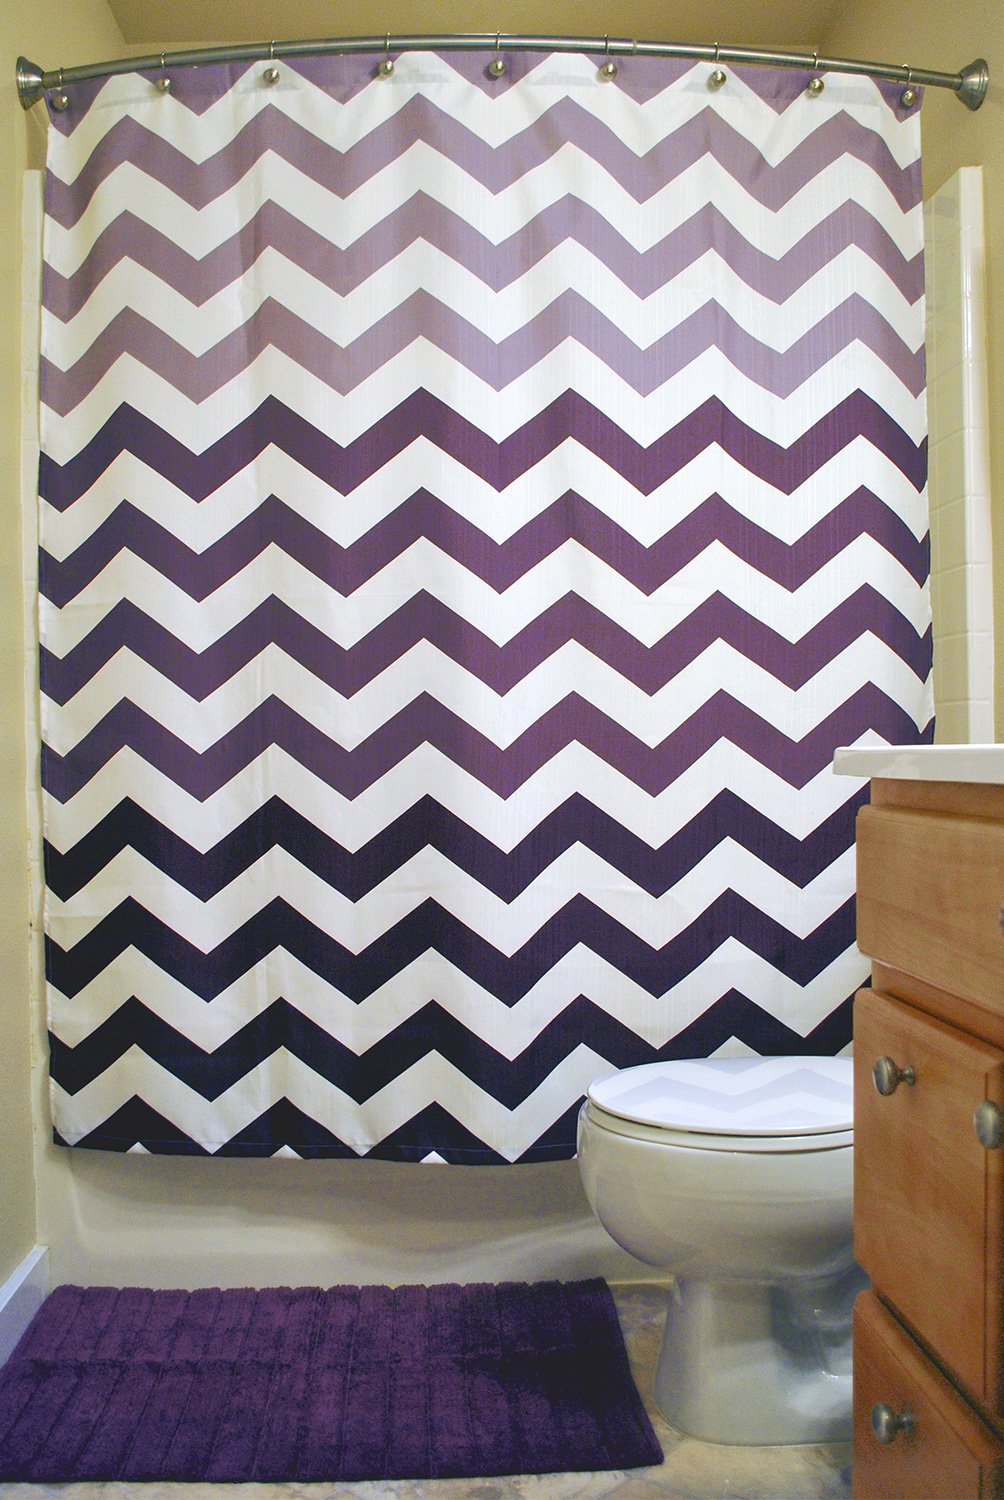 DII Oceanique Shower Curtain 100% Polyester, Machine Washable, for Everyday Use, Kids, Teens, Extra Bathroom, Main Bathroom 72x72, Eggplant Ombre Chevron